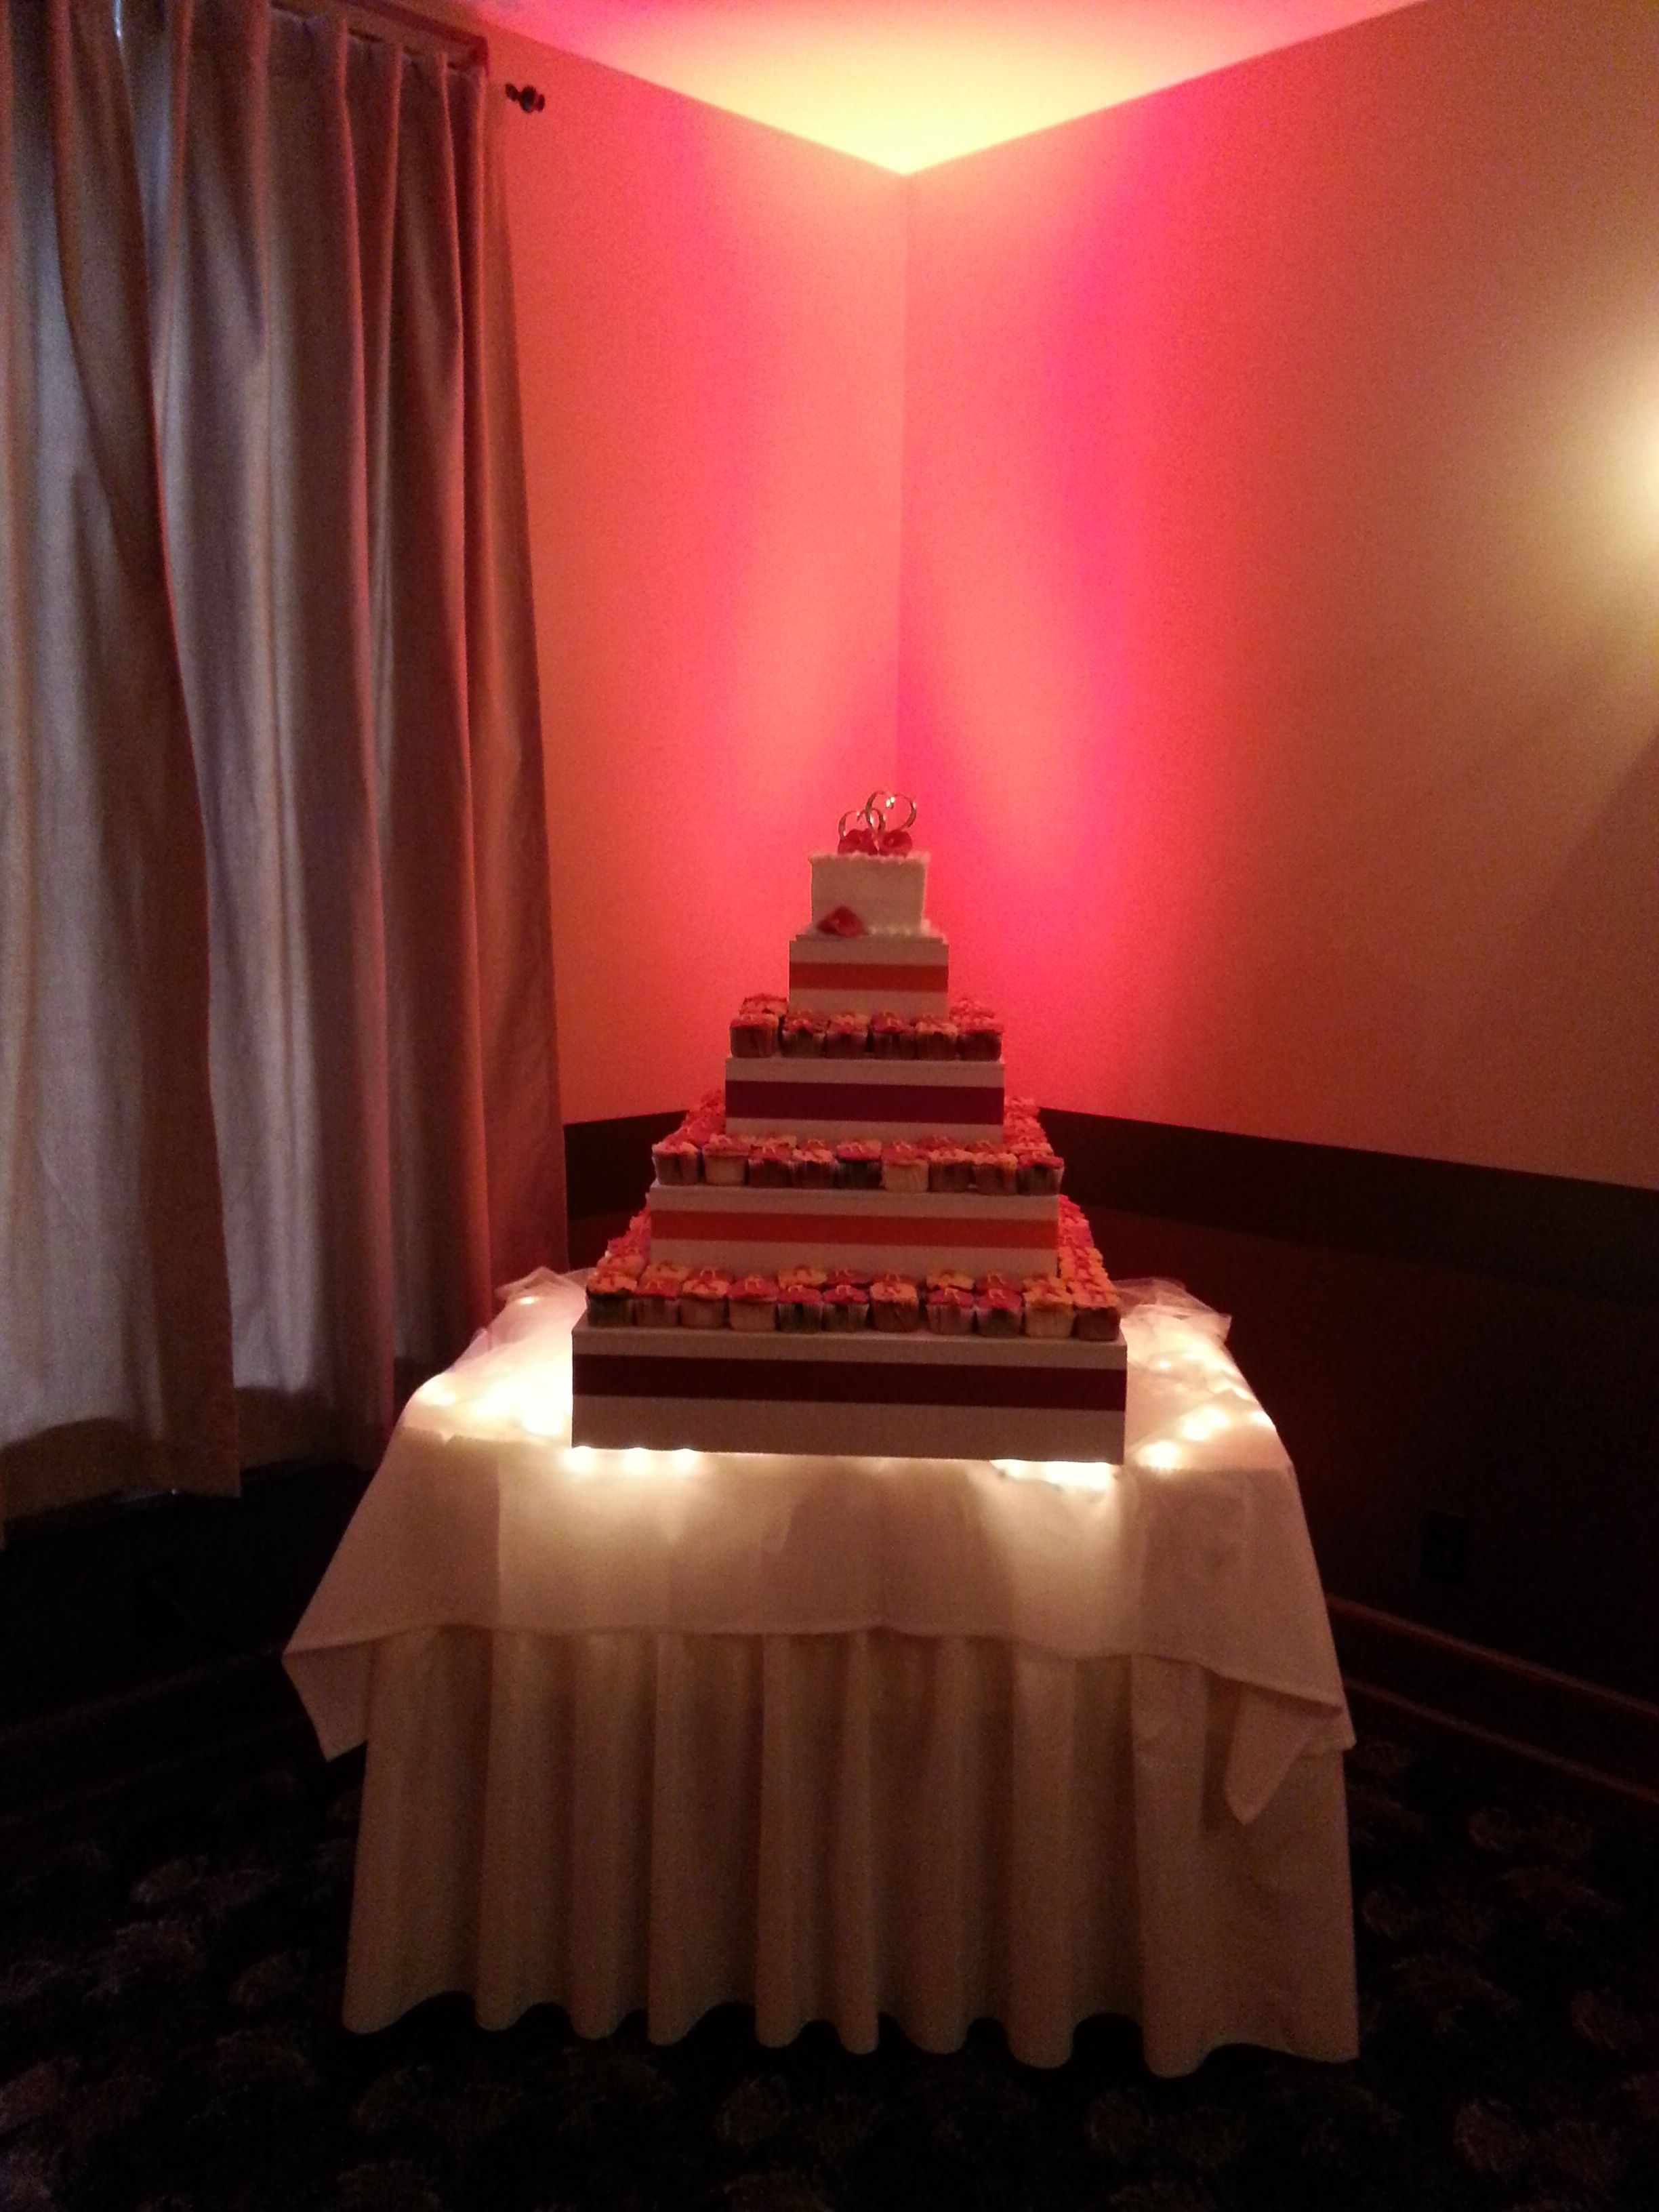 Cupcakes are always an option at Langley Hall, we have different favors and icings to pick from